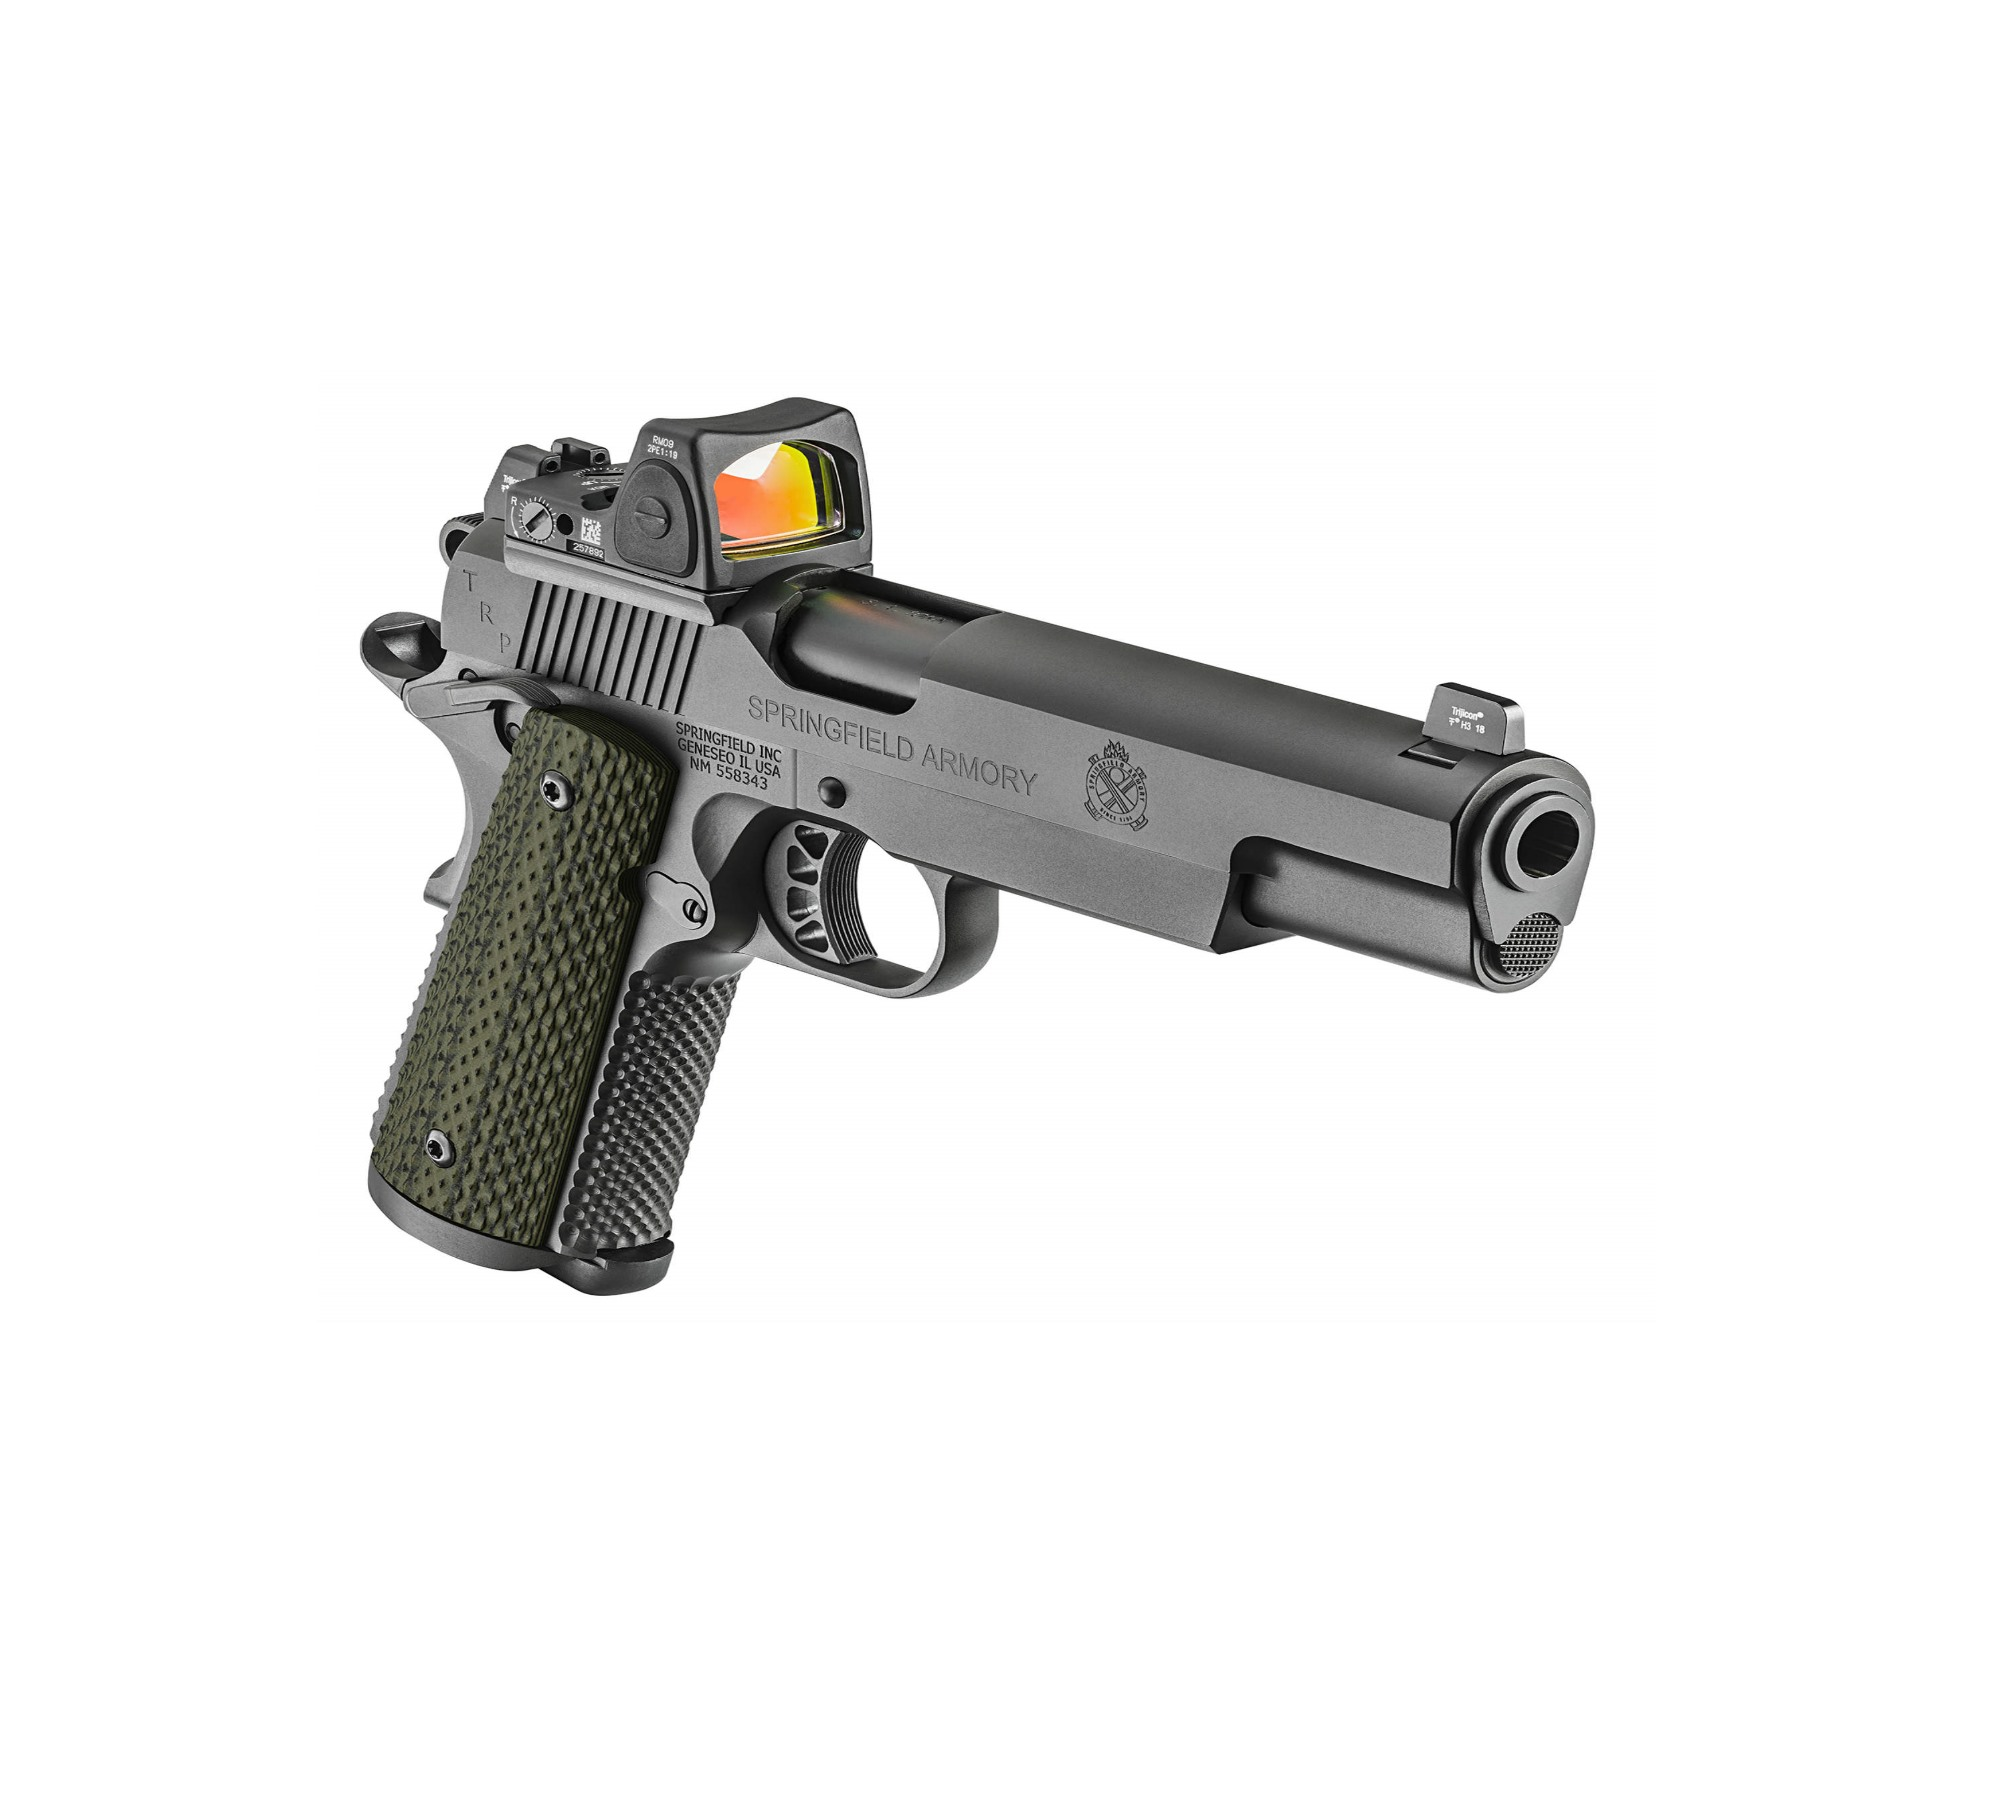 The new Springfield Armory 1911 TRP 10mm RMR.